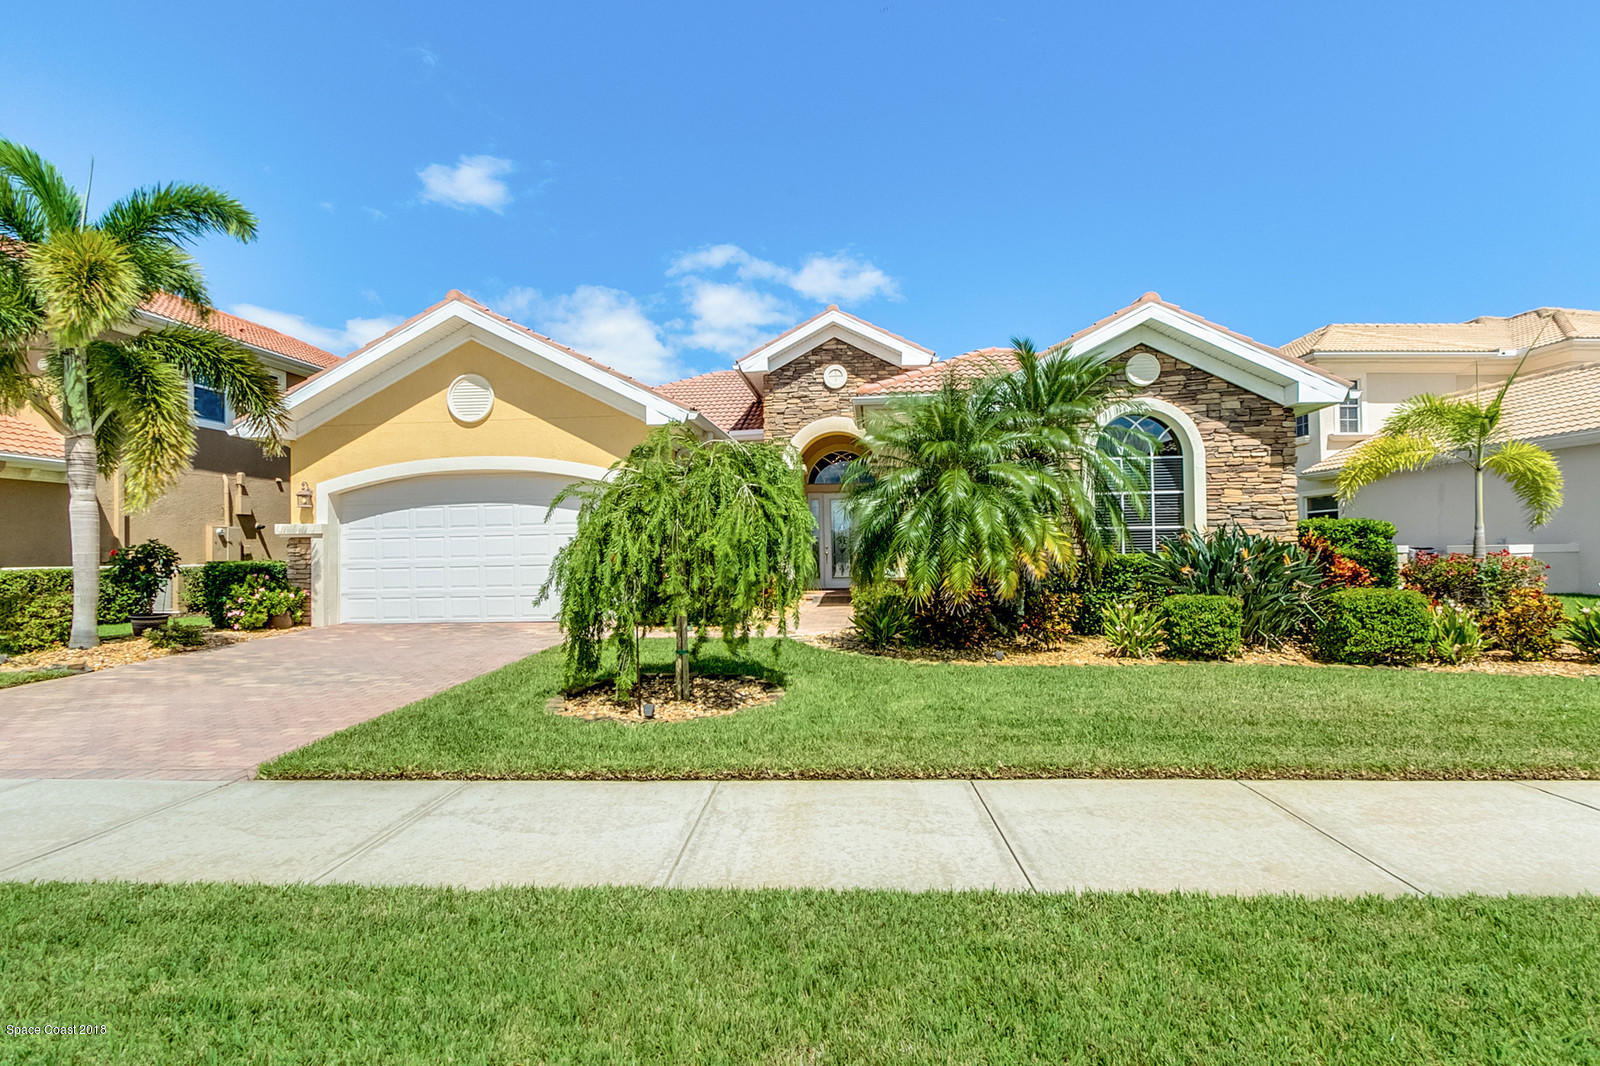 Single Family Home for Sale at 6455 Arroyo 6455 Arroyo Melbourne, Florida 32940 United States